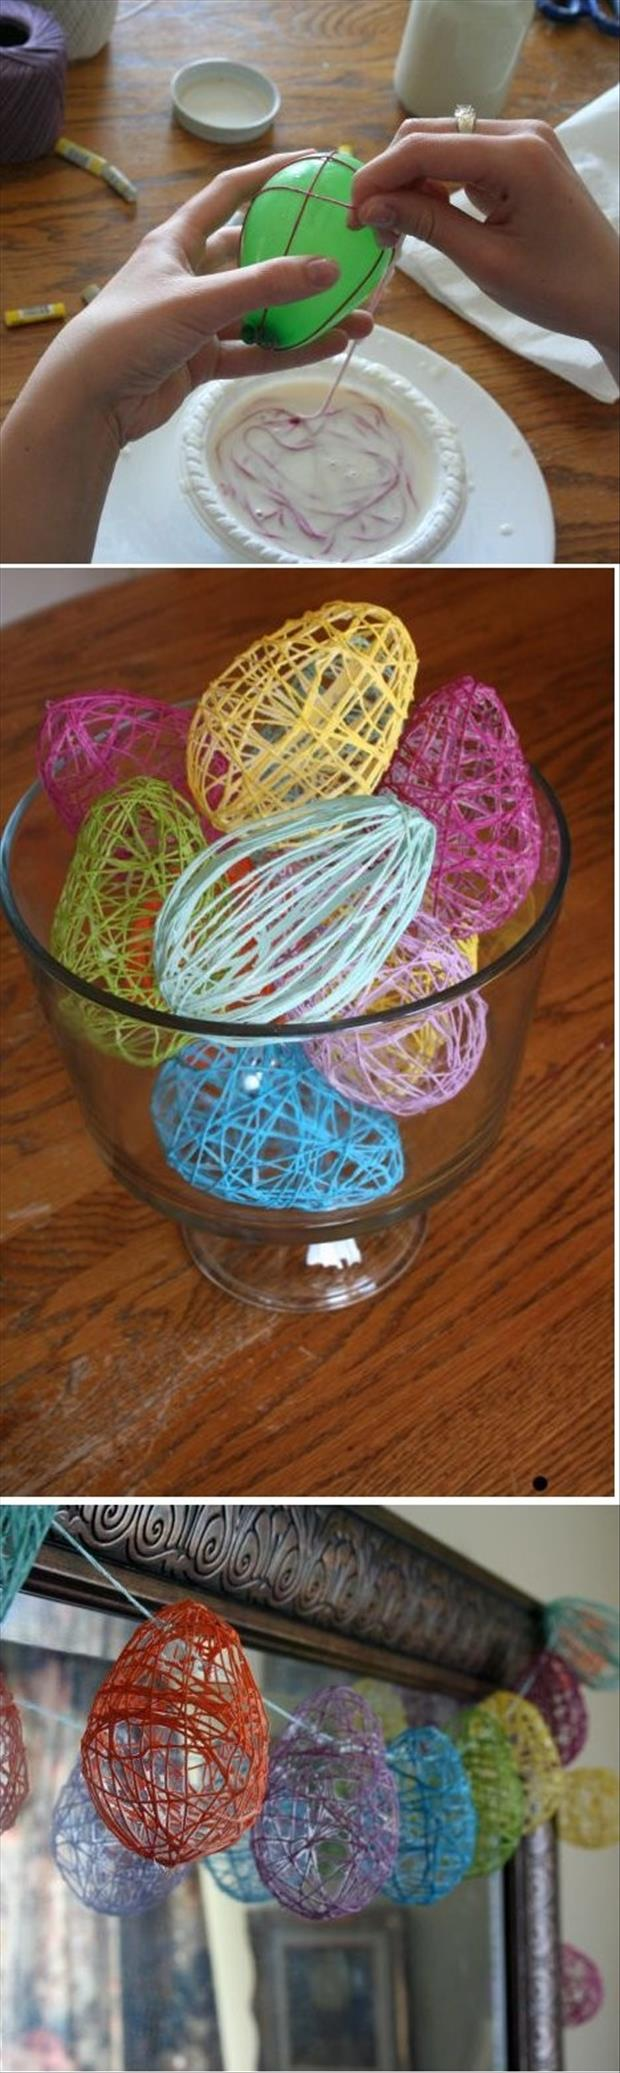 wire balls craft ideas